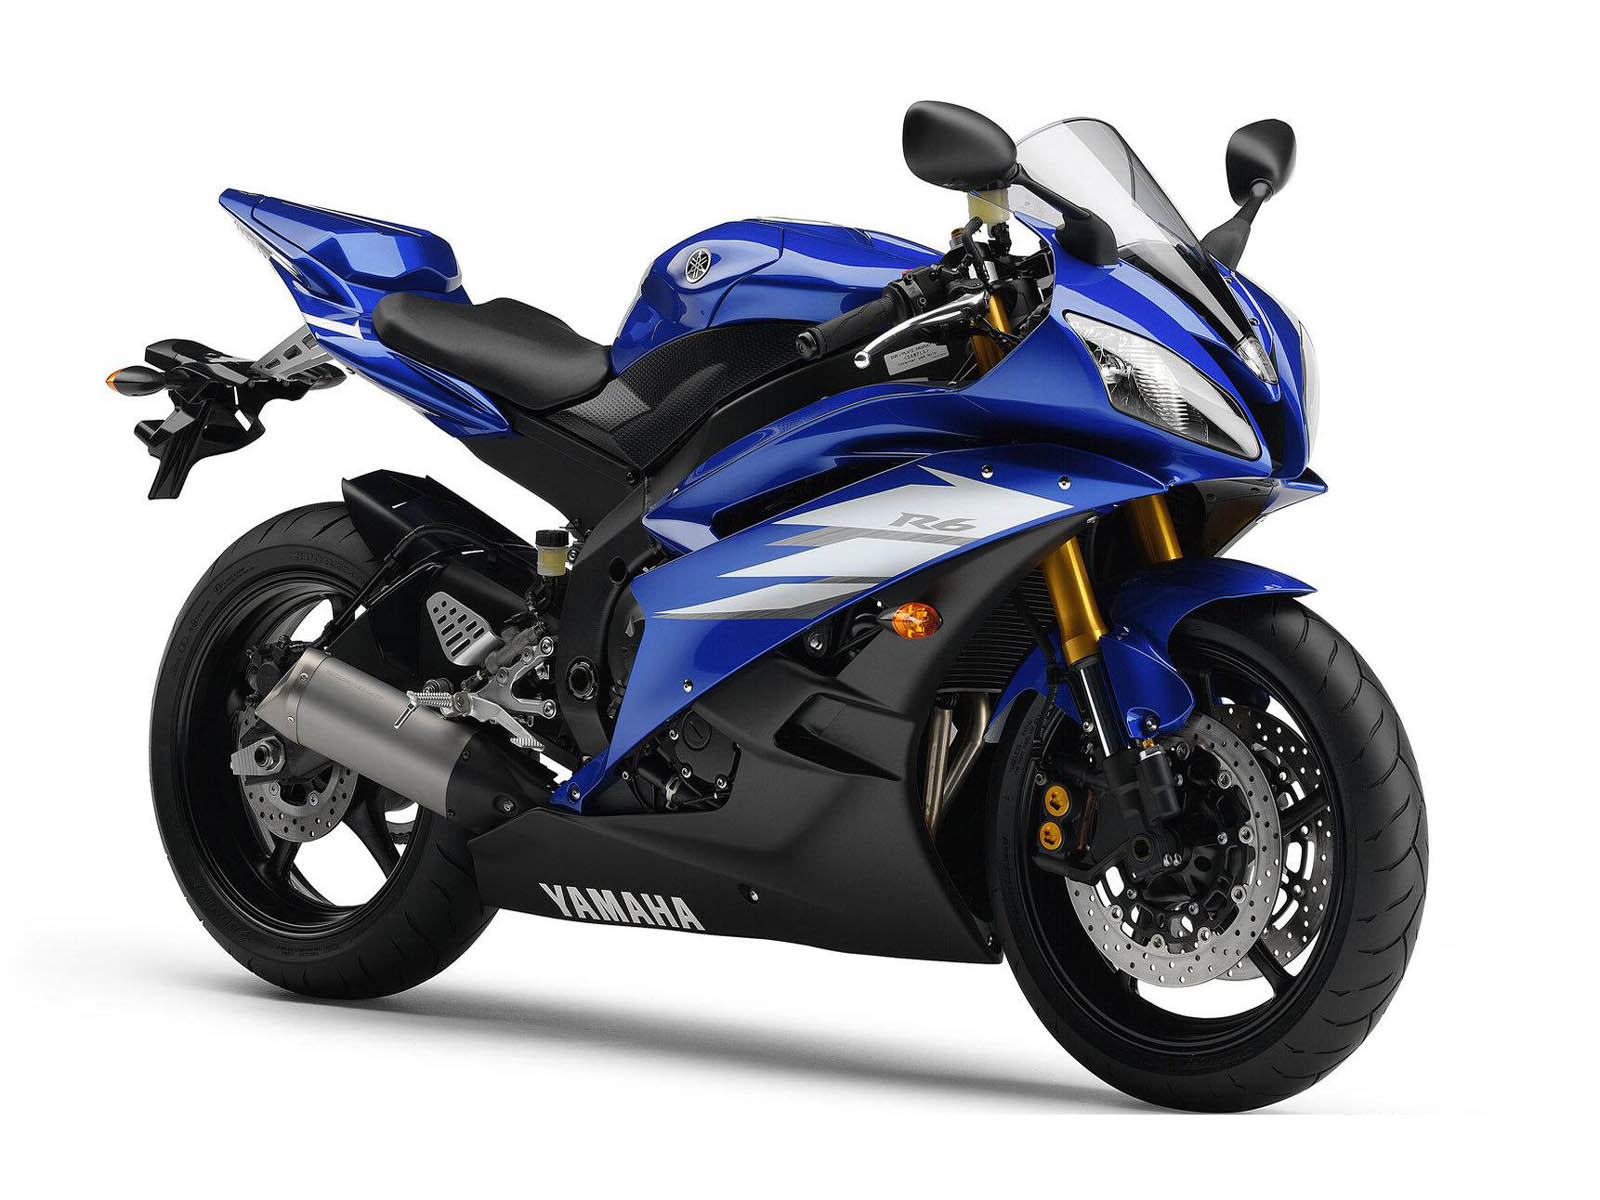 wallpapers Yamaha R6 Bike Wallpapers 1600x1200